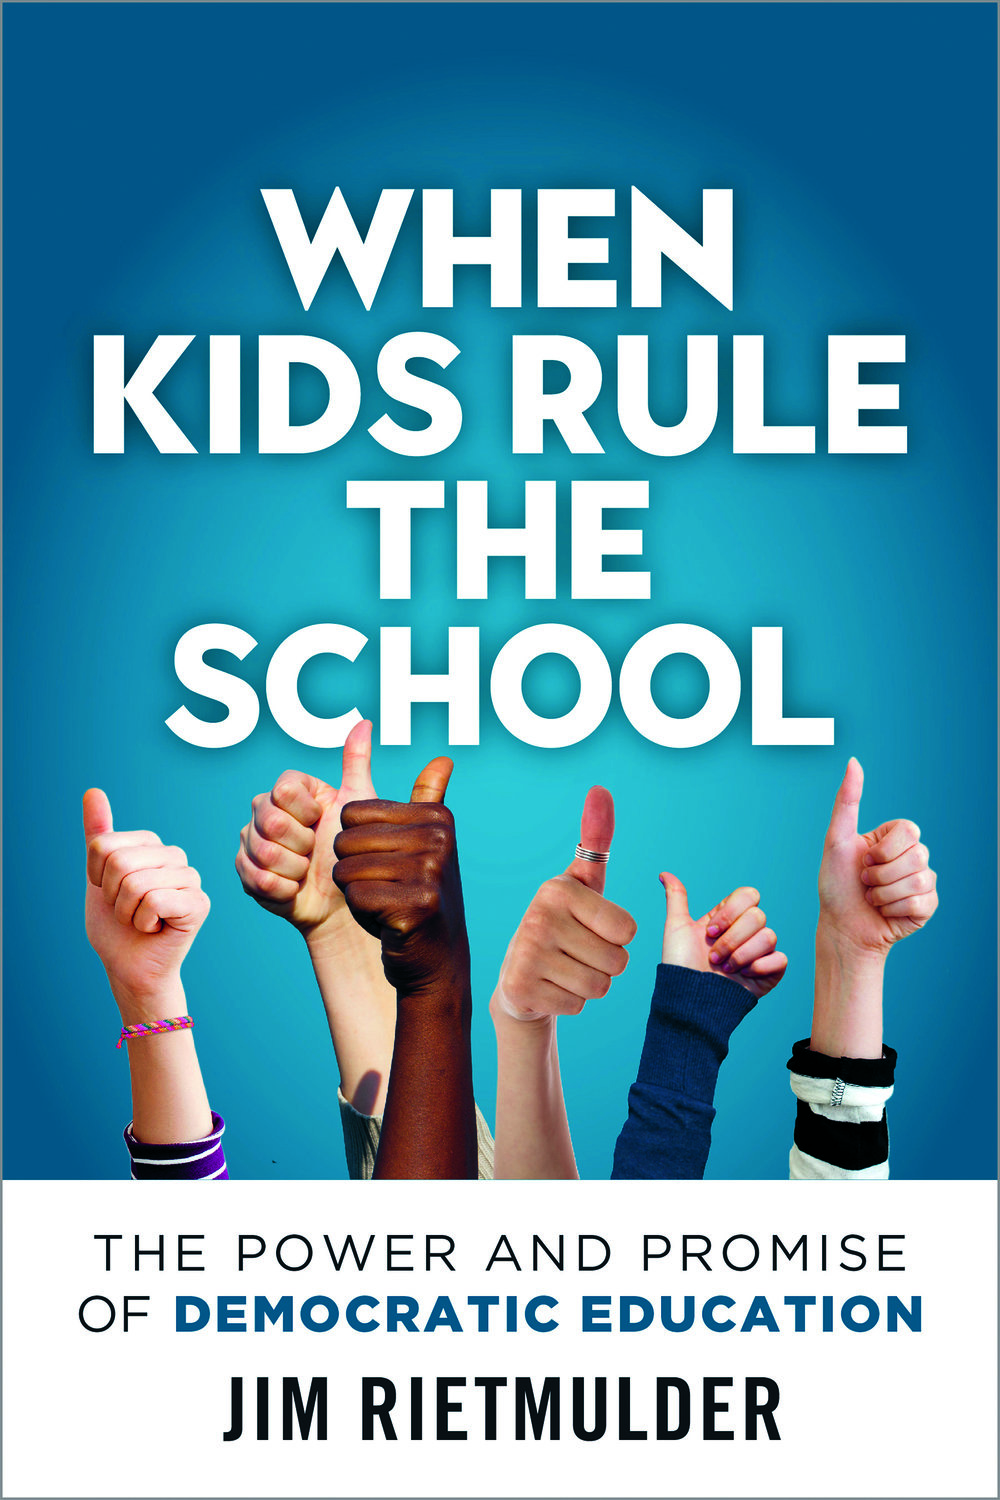 Book Cover - When Kids Rule the School.jpg